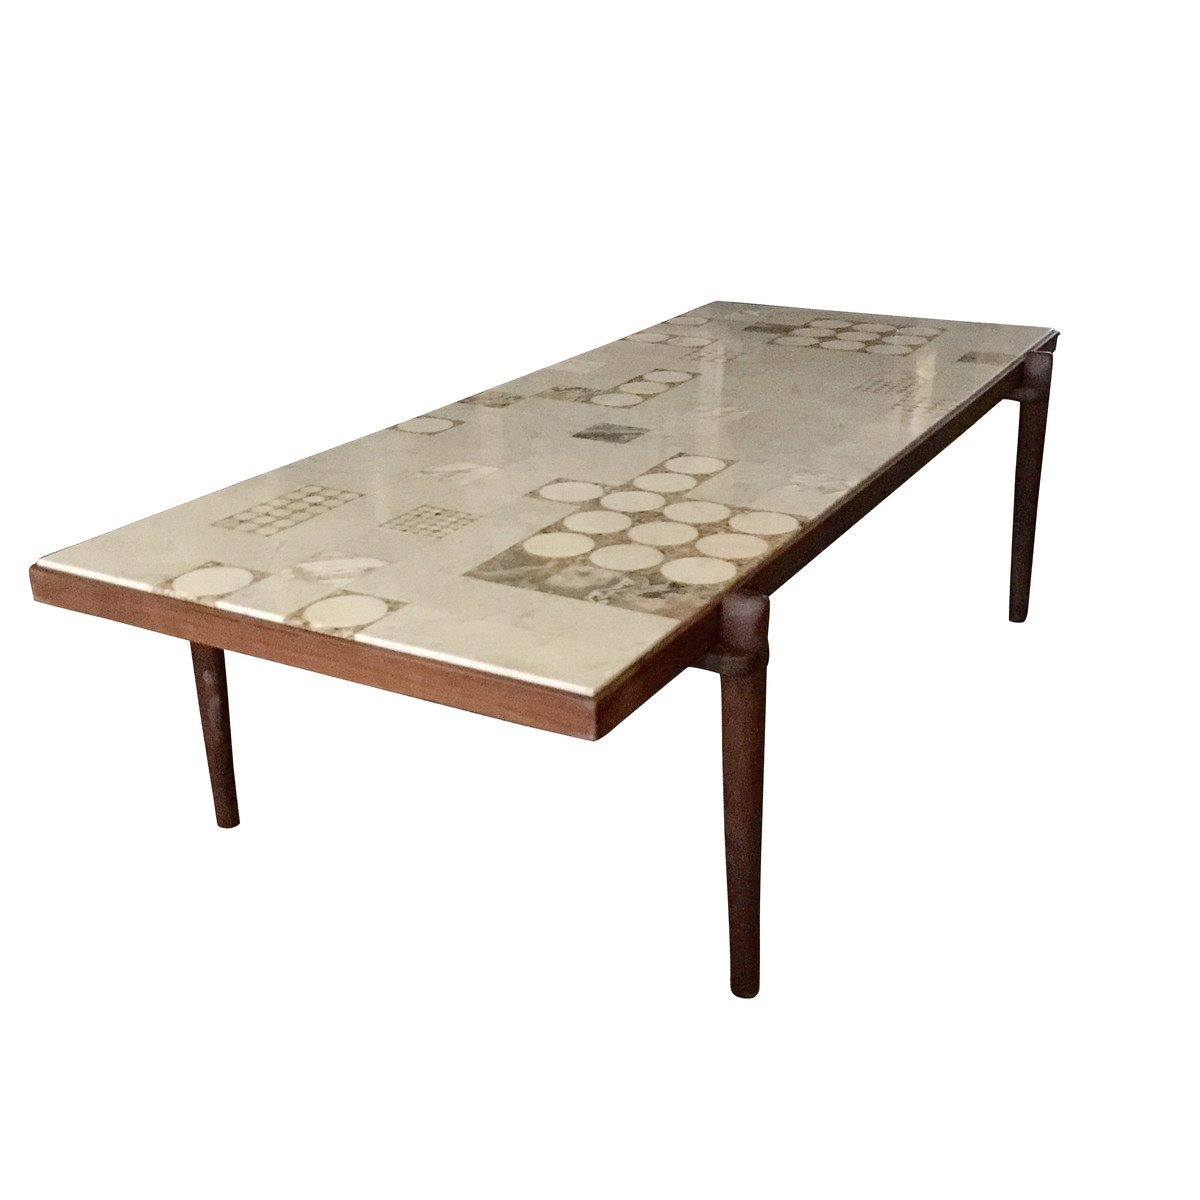 Marble Top Coffee Table: Mid Century Scandinavian Marble Top